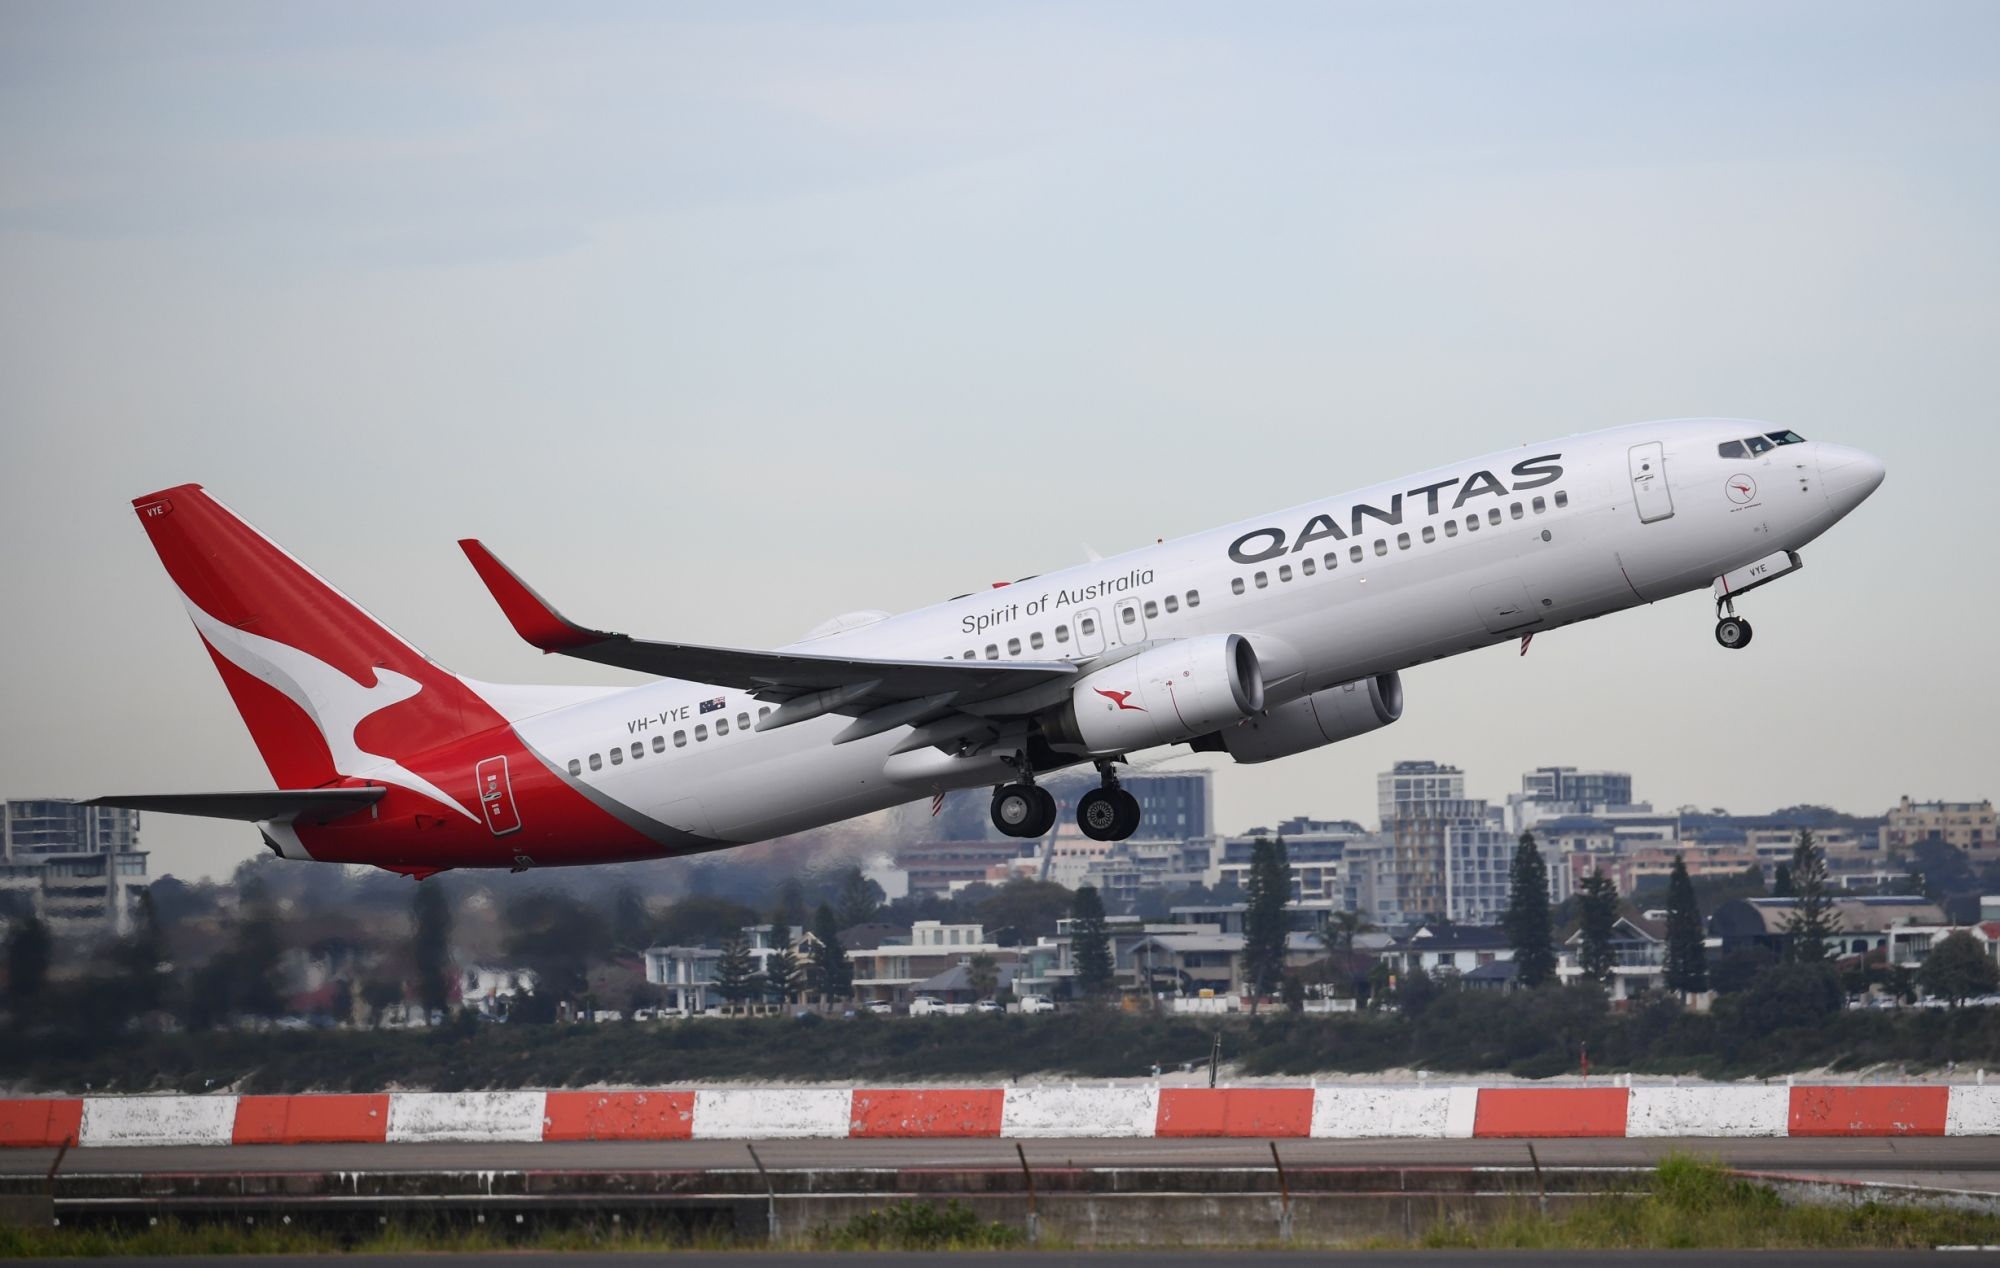 Seats on the Qantas Mystery Flight Experiences go on sale on Qantas.com at midday Thursday 4 March for travel in March, April and May.